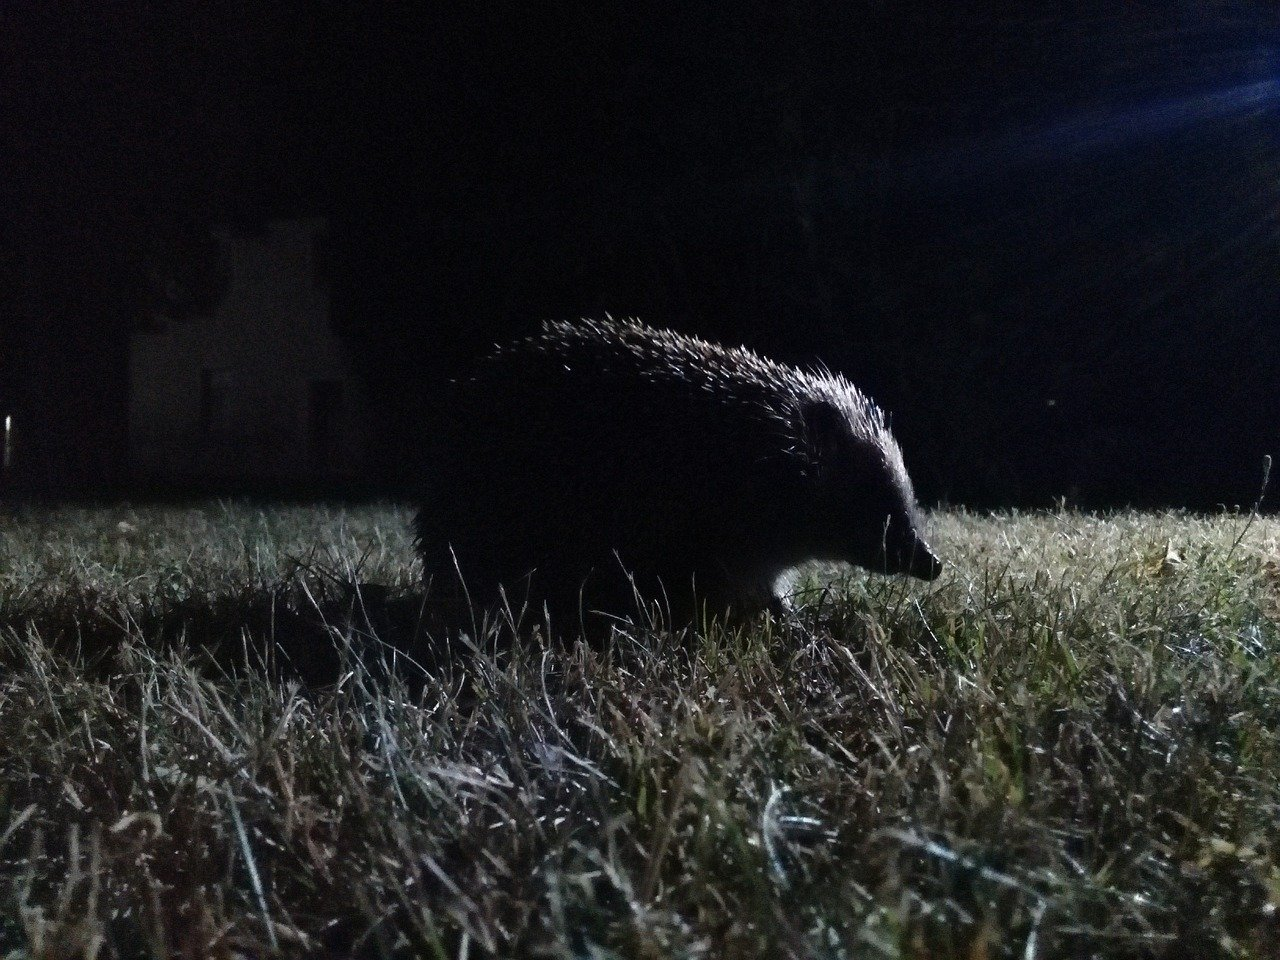 Hedgehogs are nocturnal